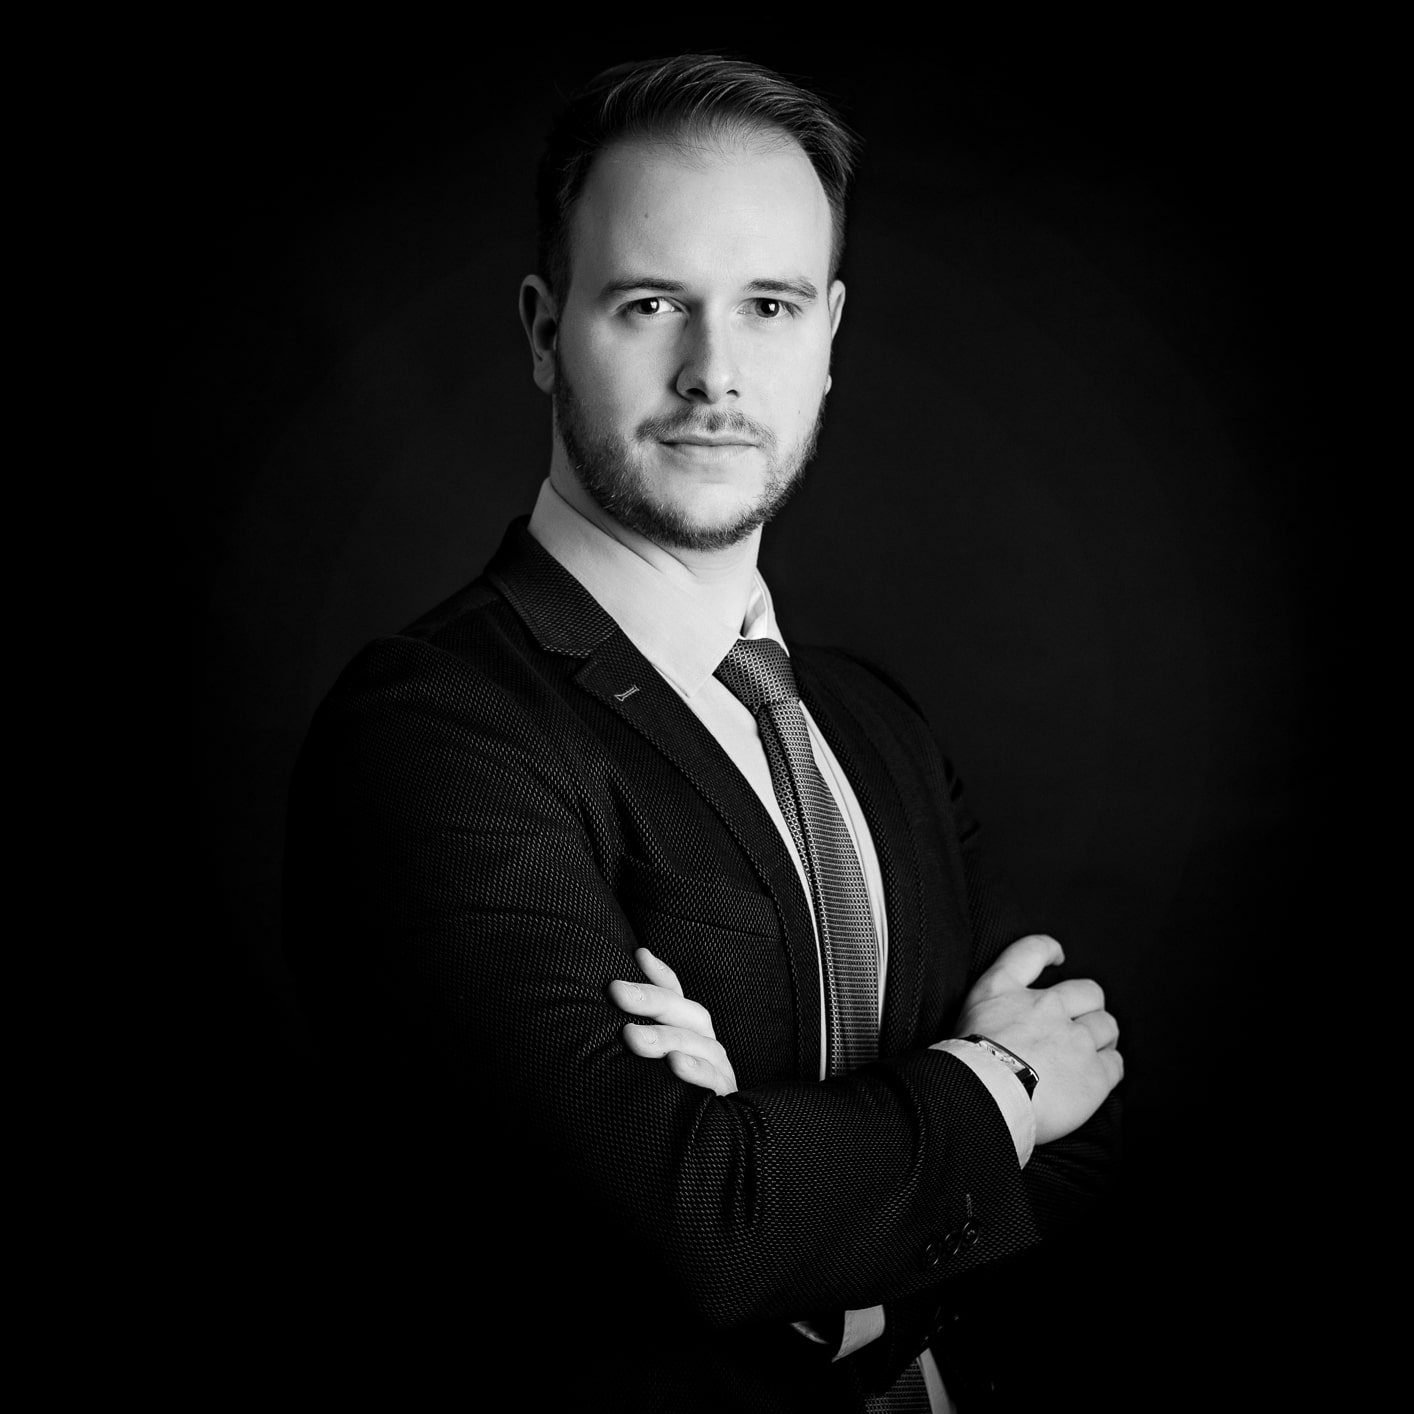 photo professionnelle corporate cv linkedin homme noir et balnc